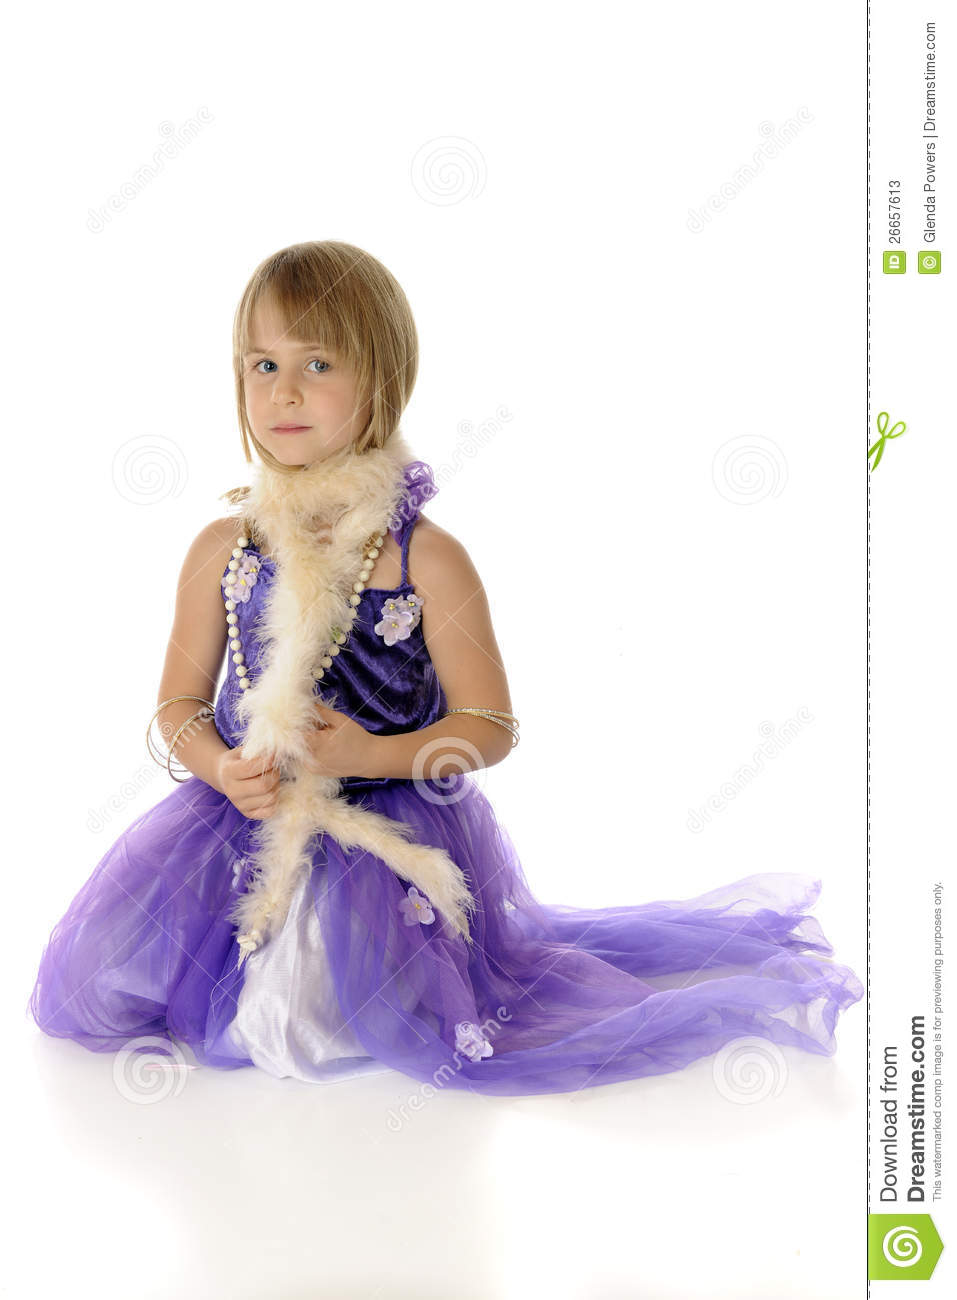 Playing Dress Up Stock Photos Image 26657613